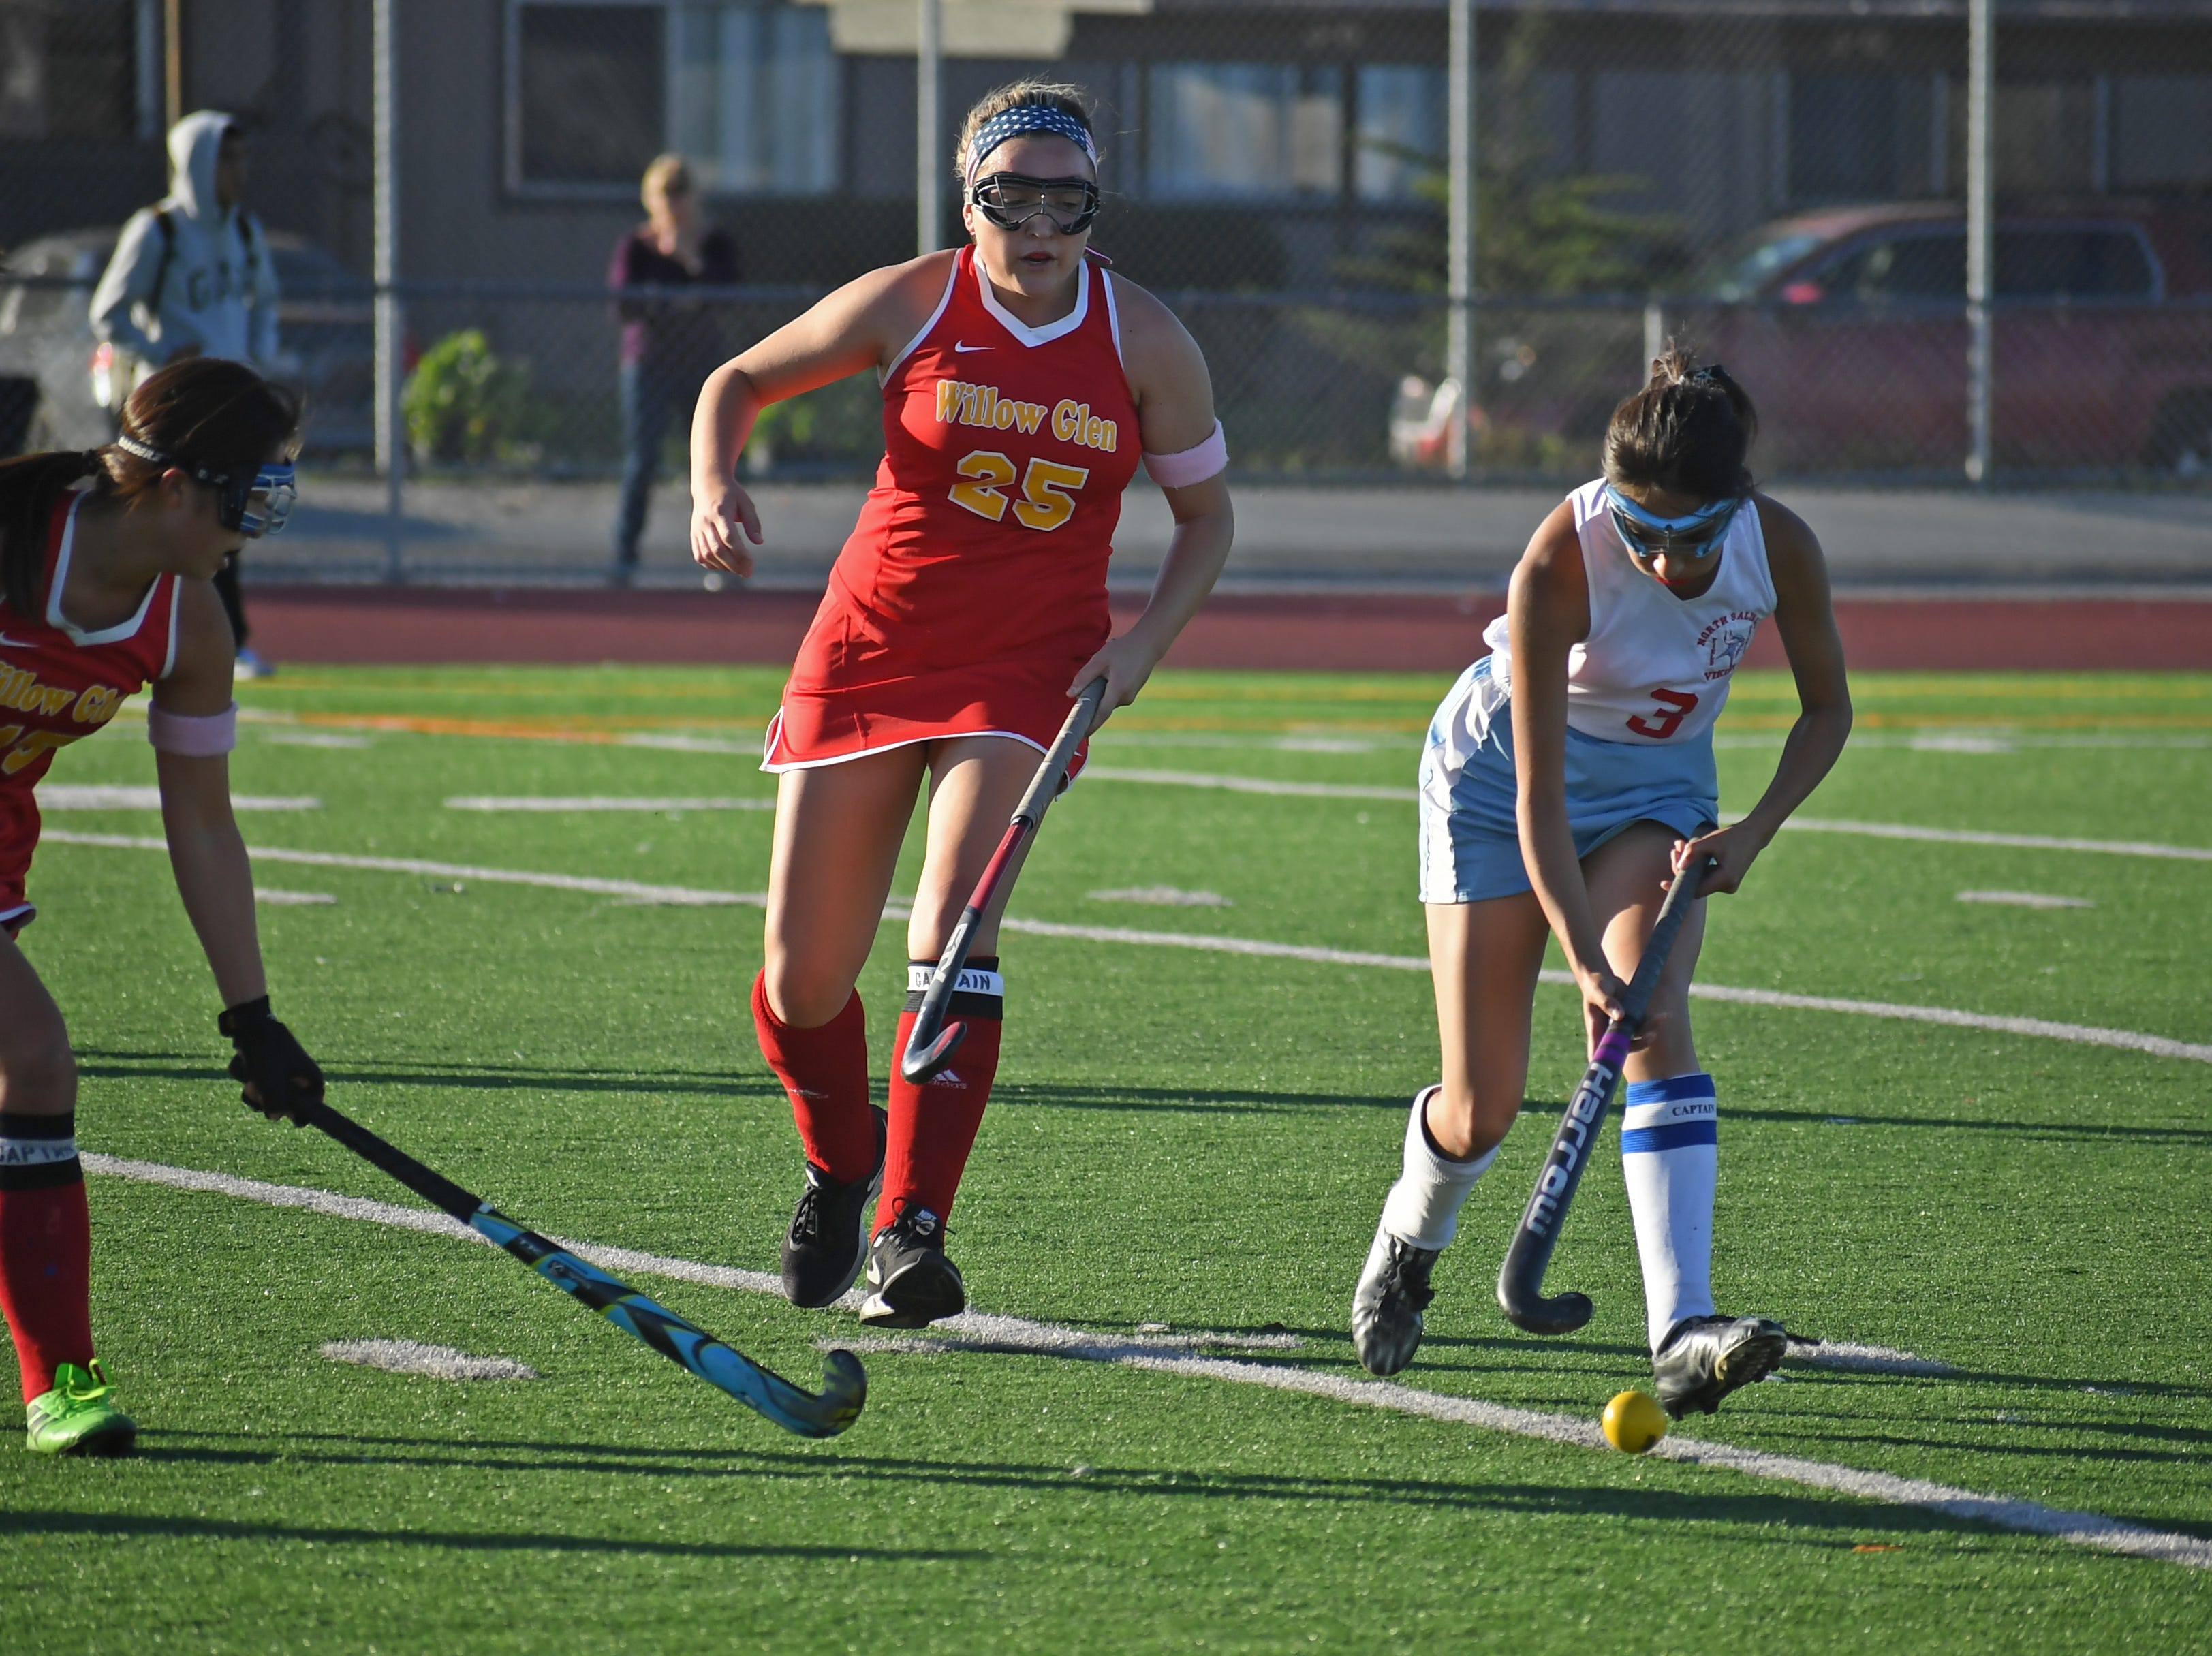 Midfielder Emily Ruelas (3) chases down the ball following a missed pass by the Willow Glen forwards.